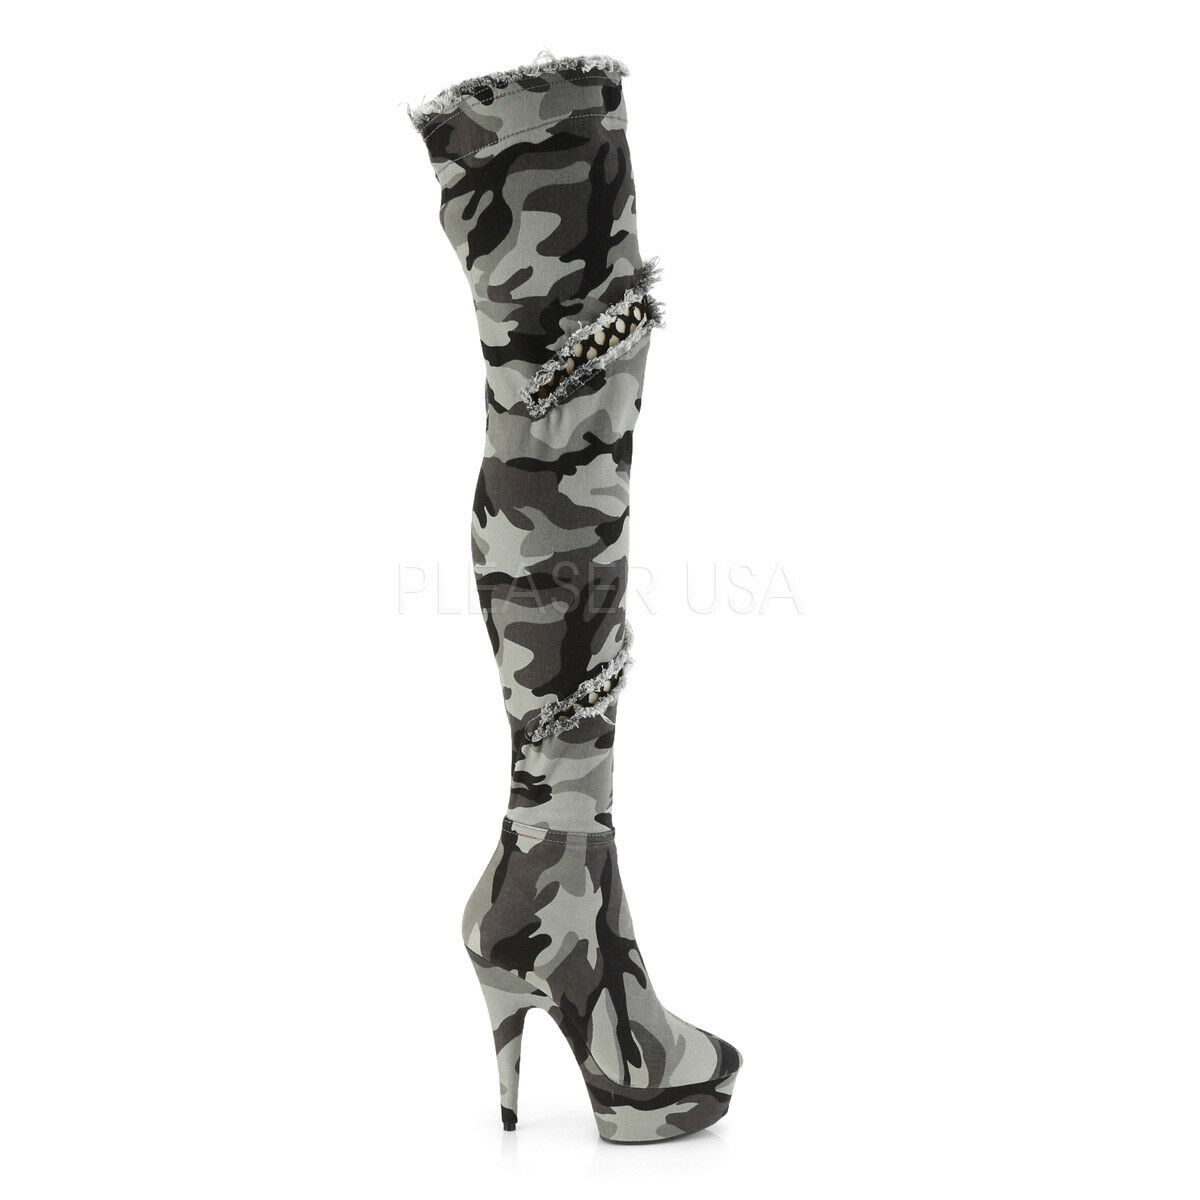 Camo Distressed Stretch Thigh High bottes 6  High Heel 6 - 14 Delight 3005